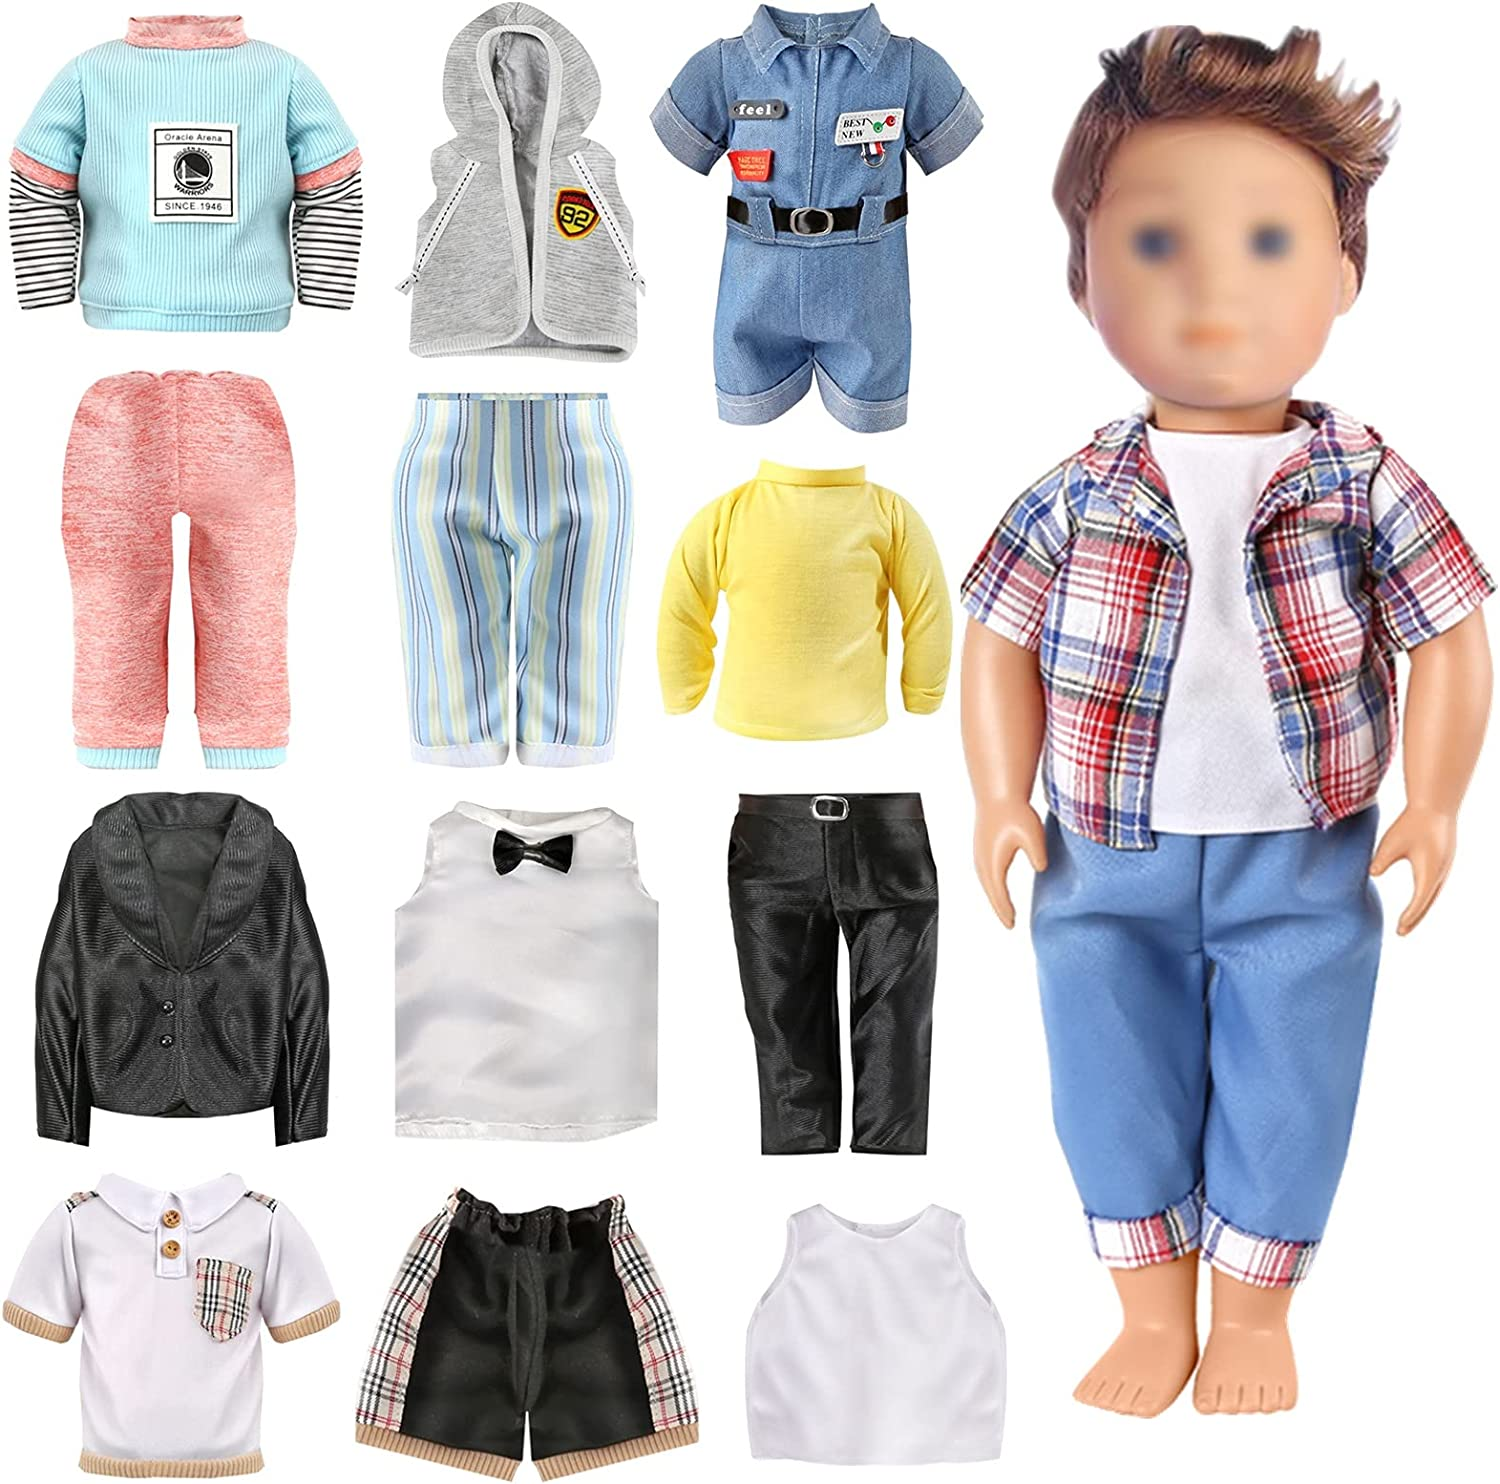 OUFOTAT 18 Inch American latest Boy Doll B Fits and 2021new shipping free Accessories Clothes